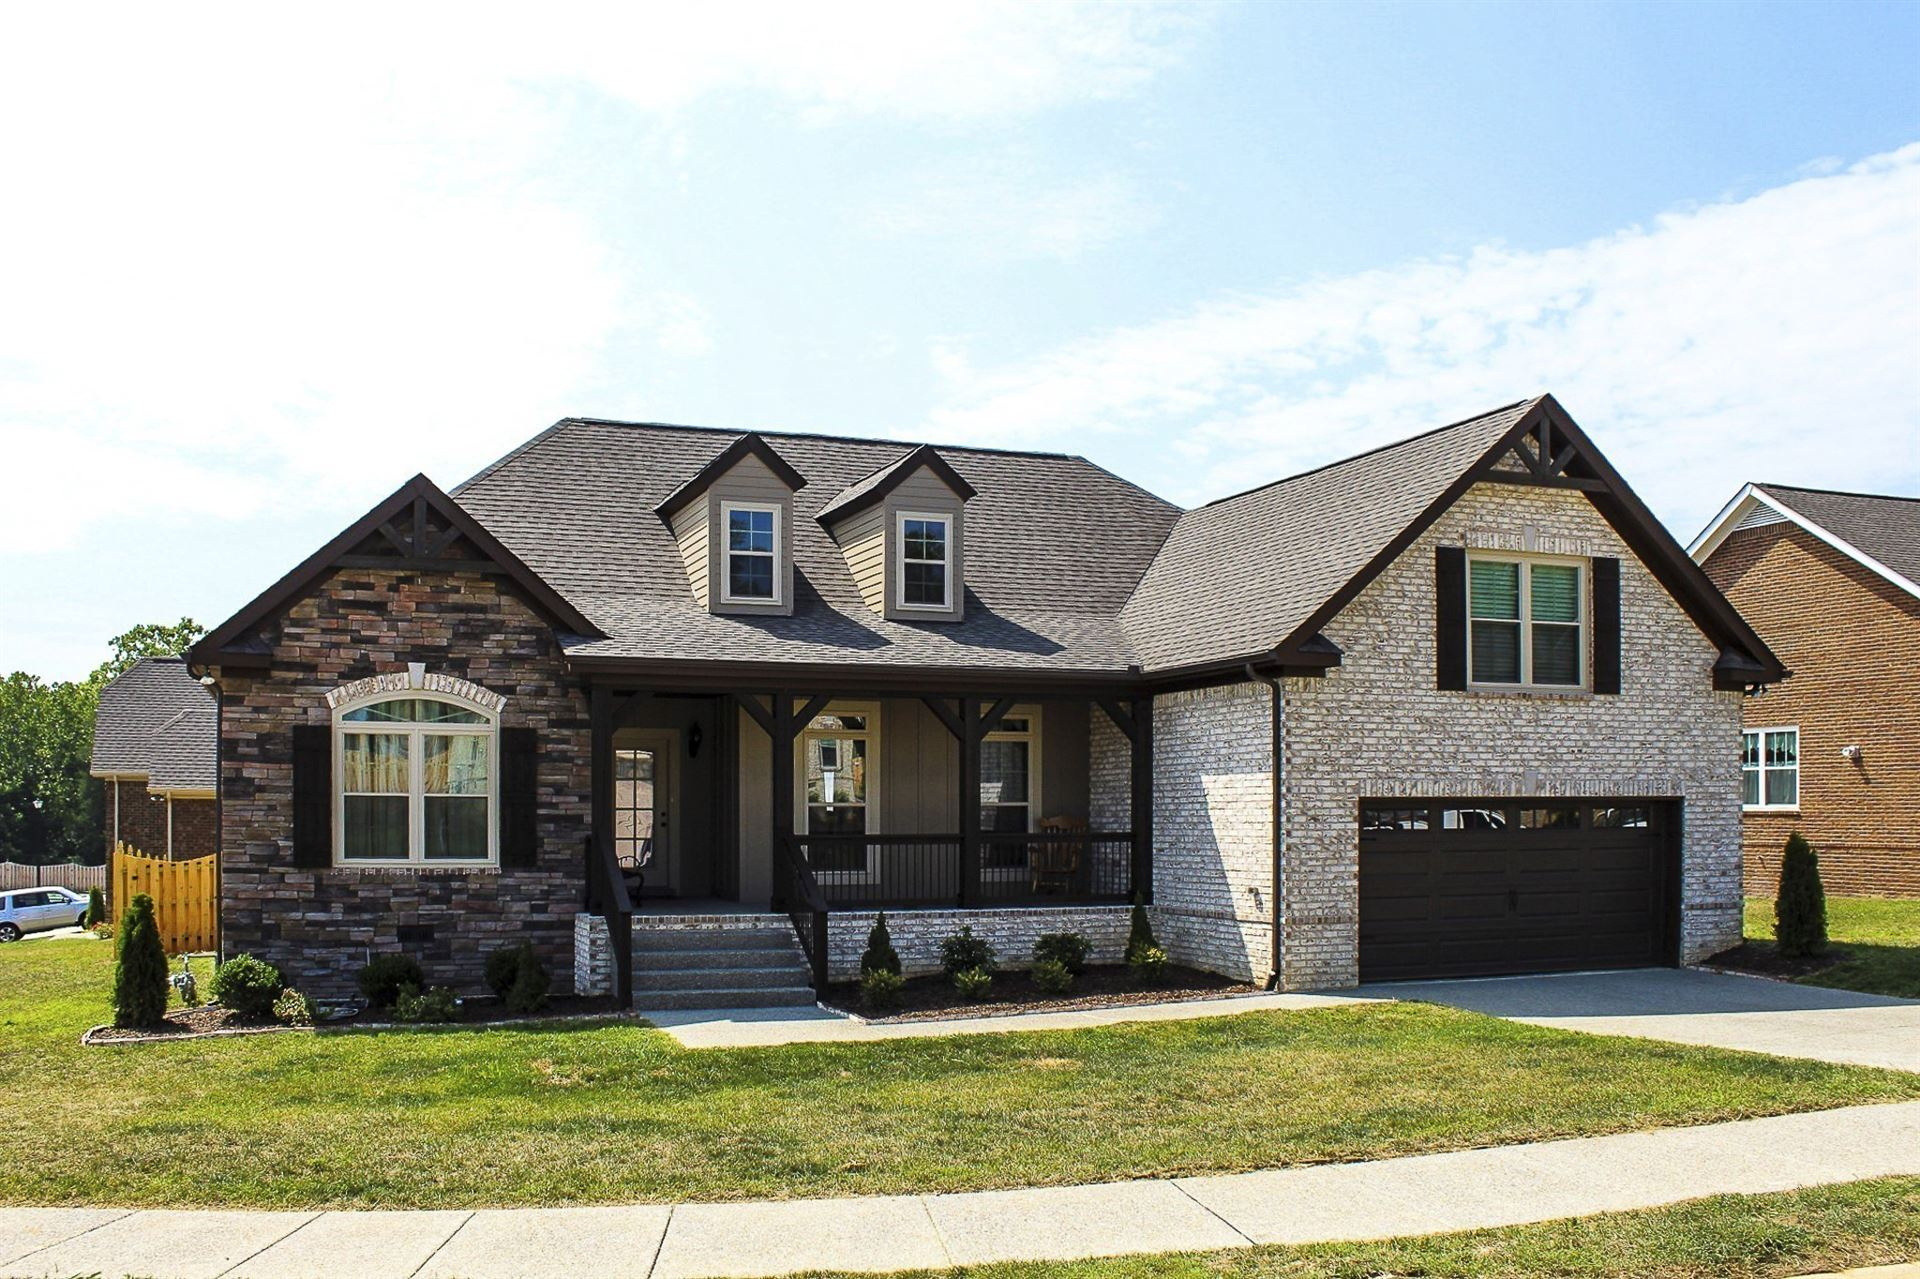 9035 Safe Haven Place Lot 547, Spring Hill, TN 37174 - MLS#: 2210030